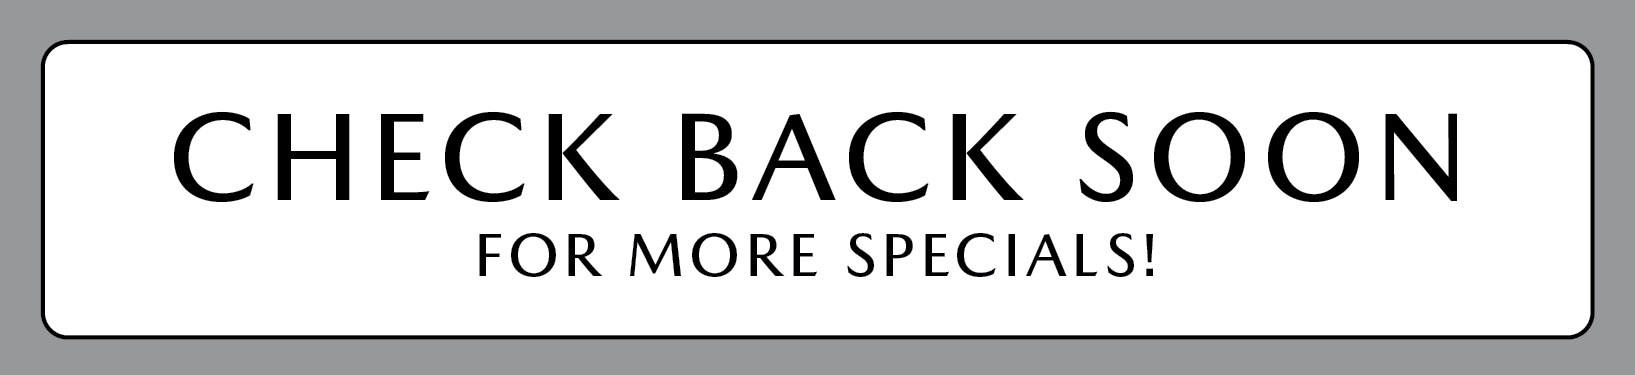 Check Back Soon For More Specials!